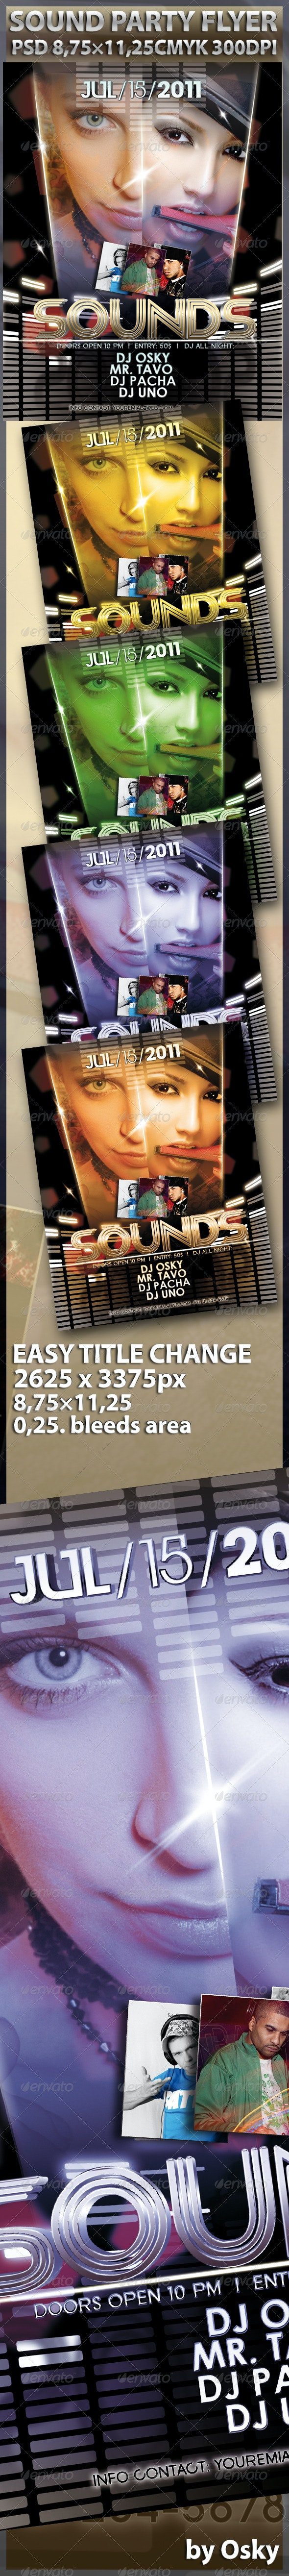 Sounds Party Flyer - Clubs & Parties Events